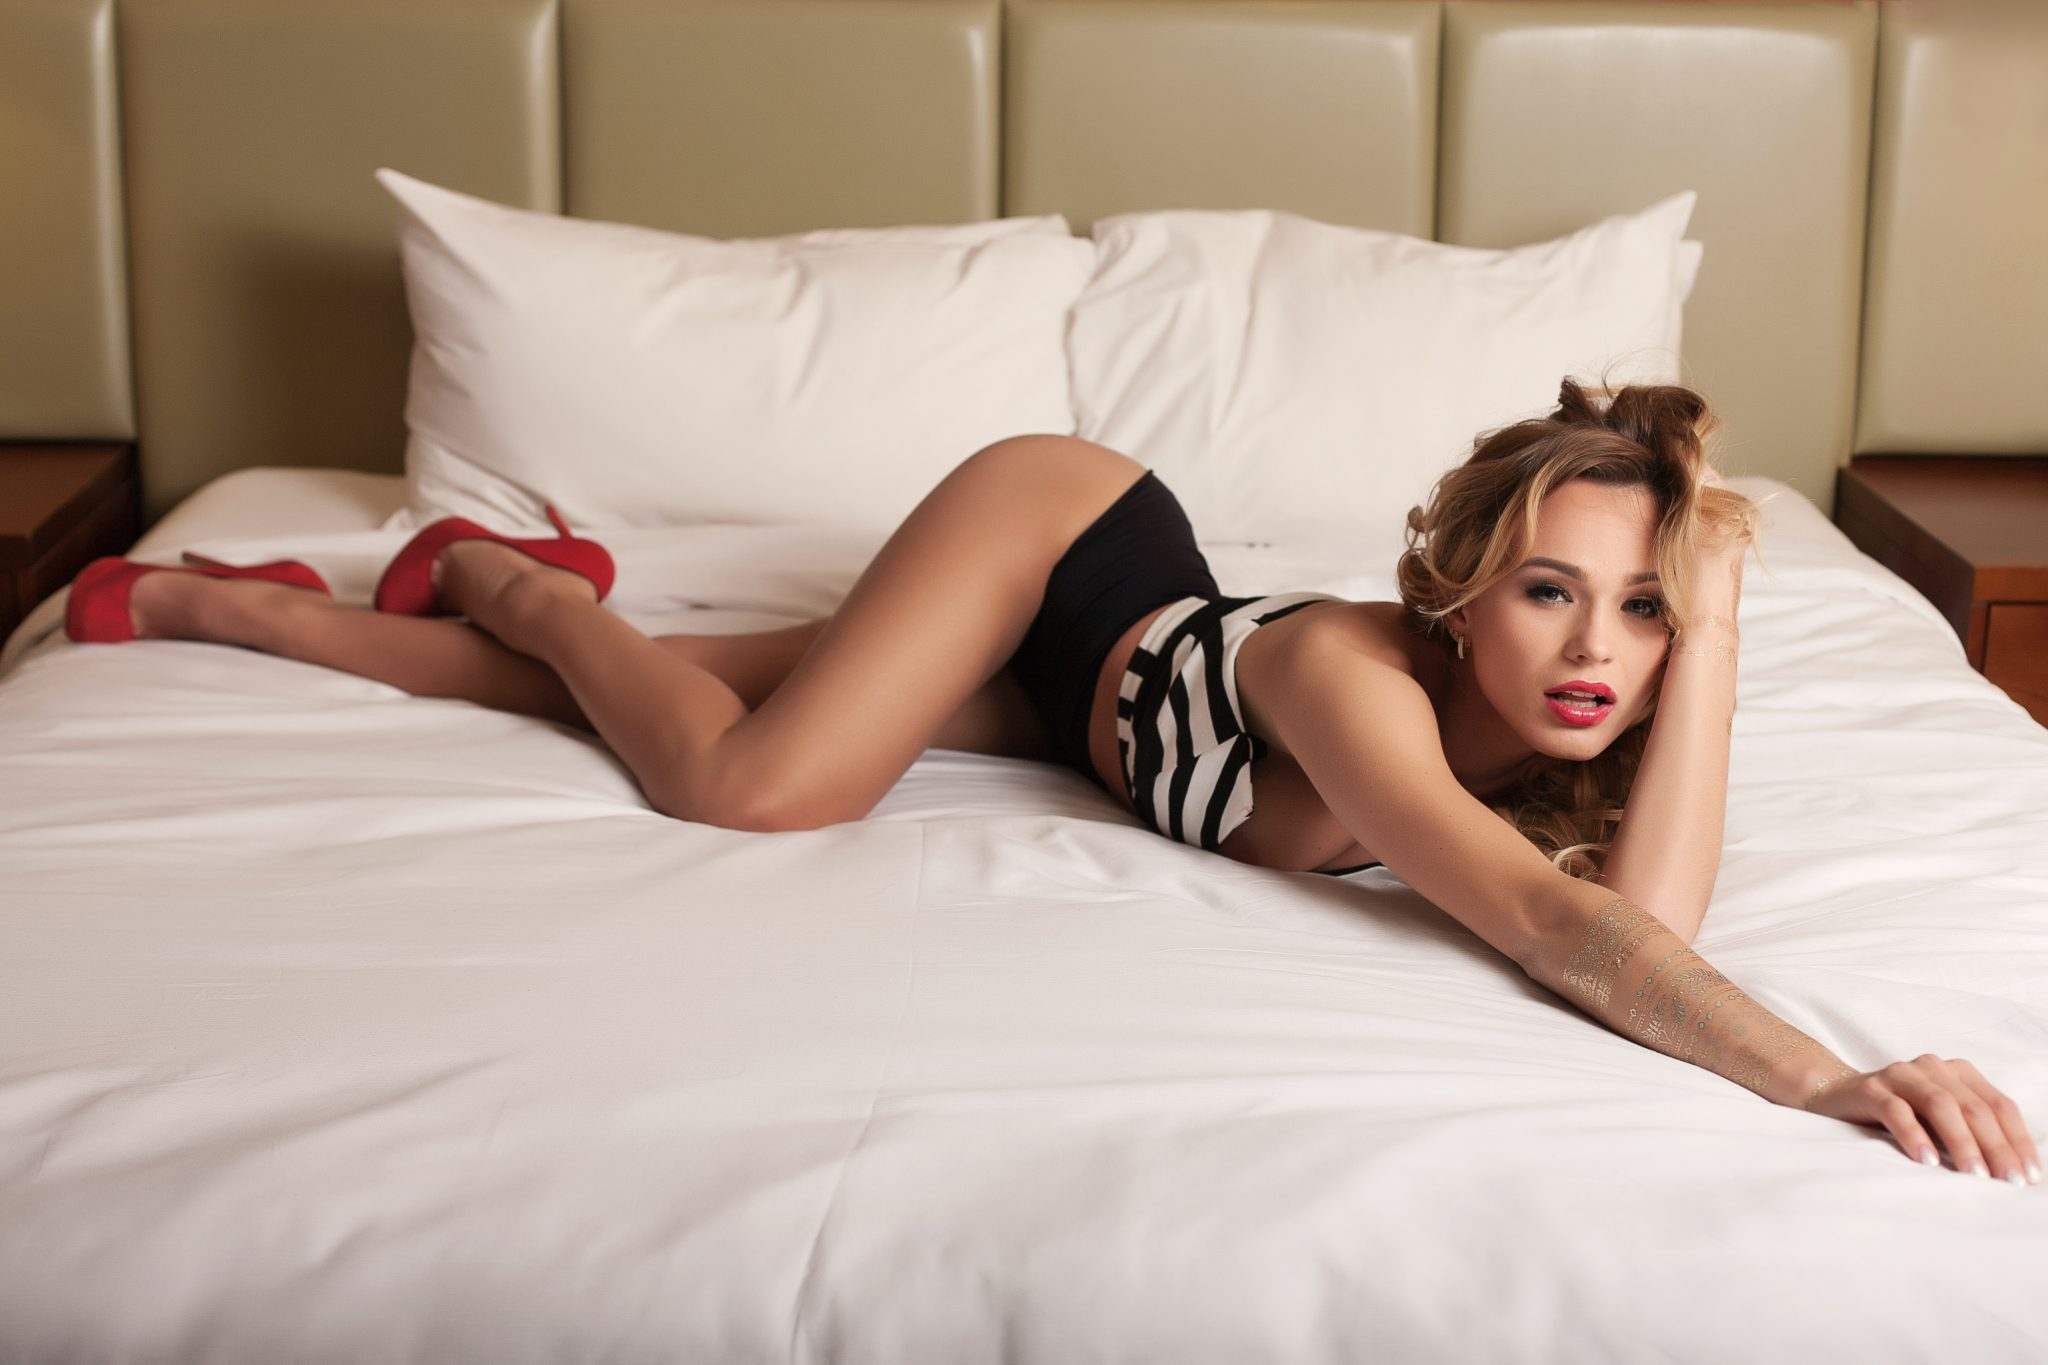 Posing example for boudoir photography.